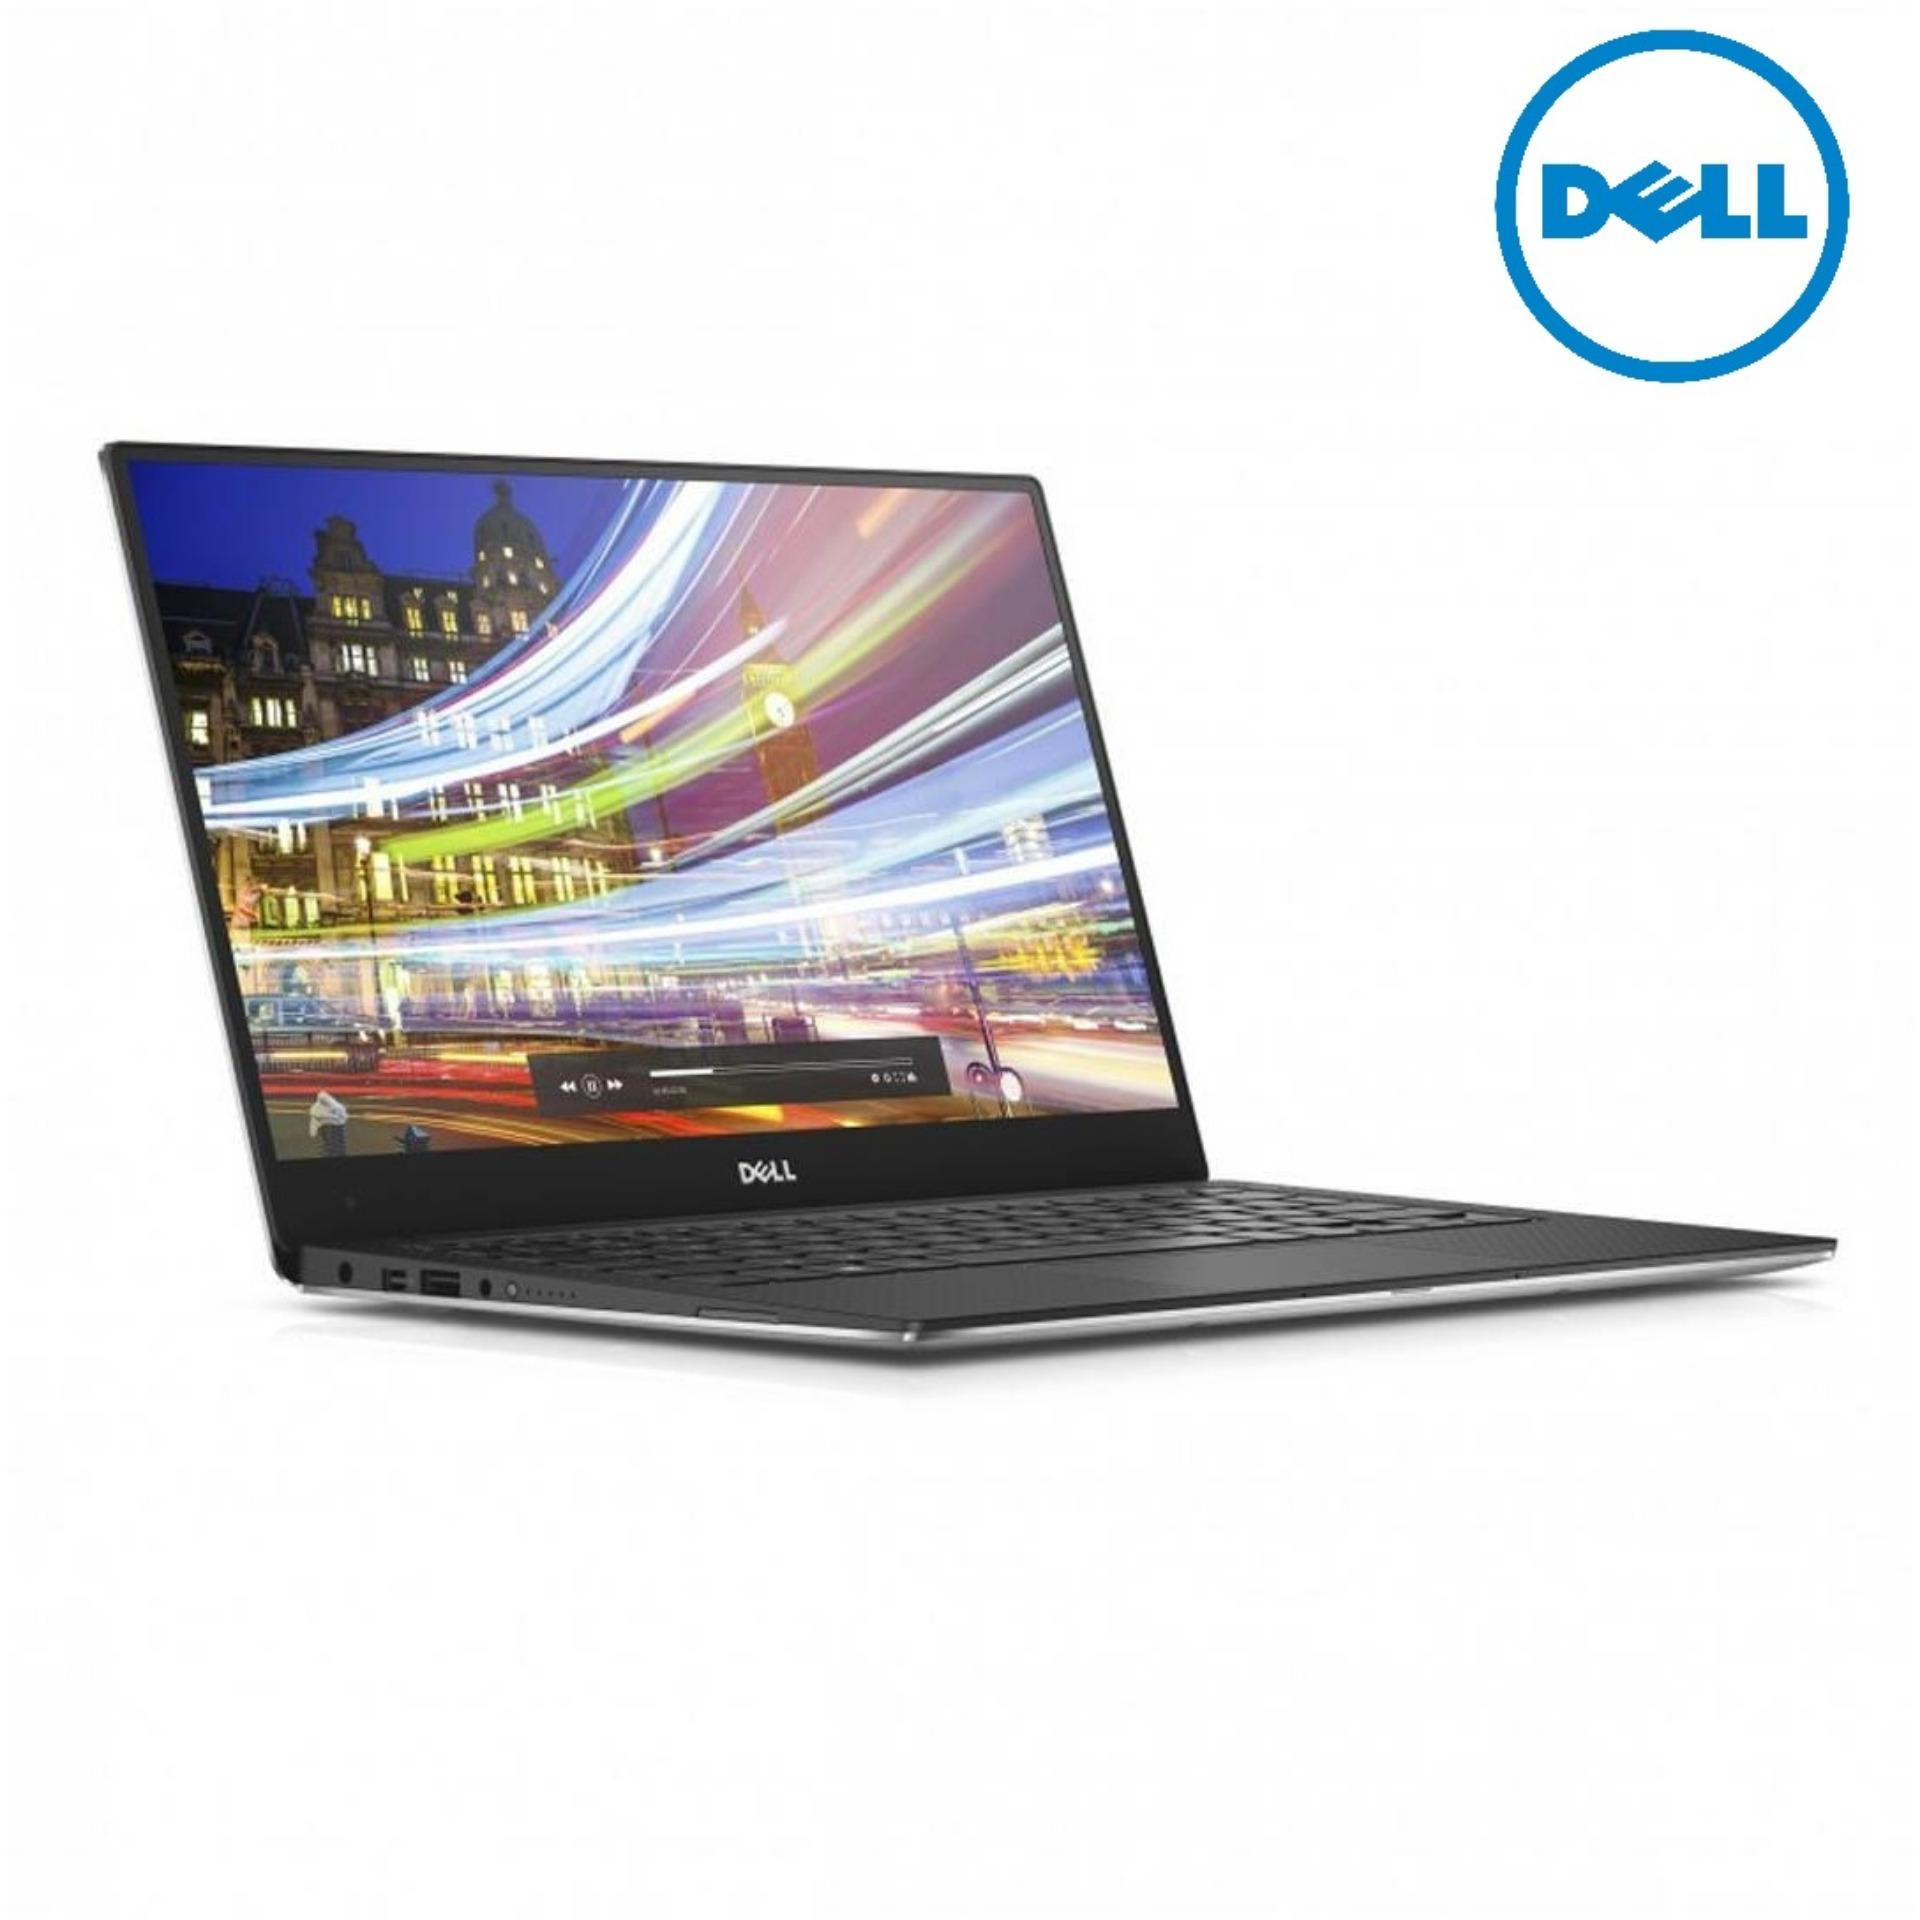 New Dell XPS13 (9370) 8th Gen i7-8550U, 256SSD, WIN10(Silver)